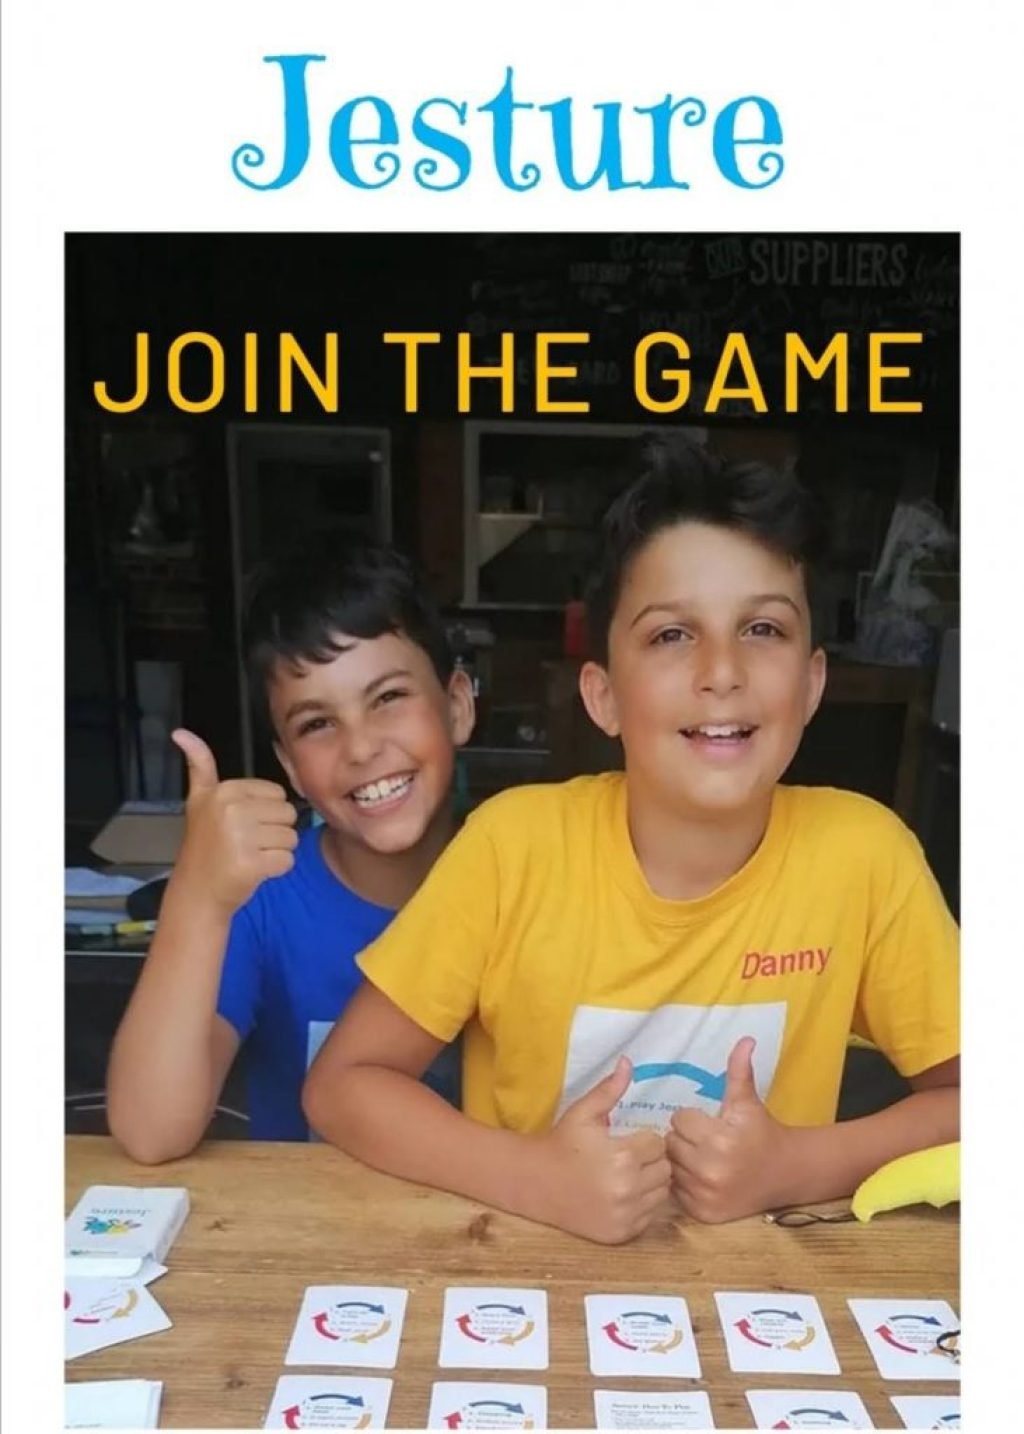 Jesture, a brand-new family game created during lockdown by two young brothers